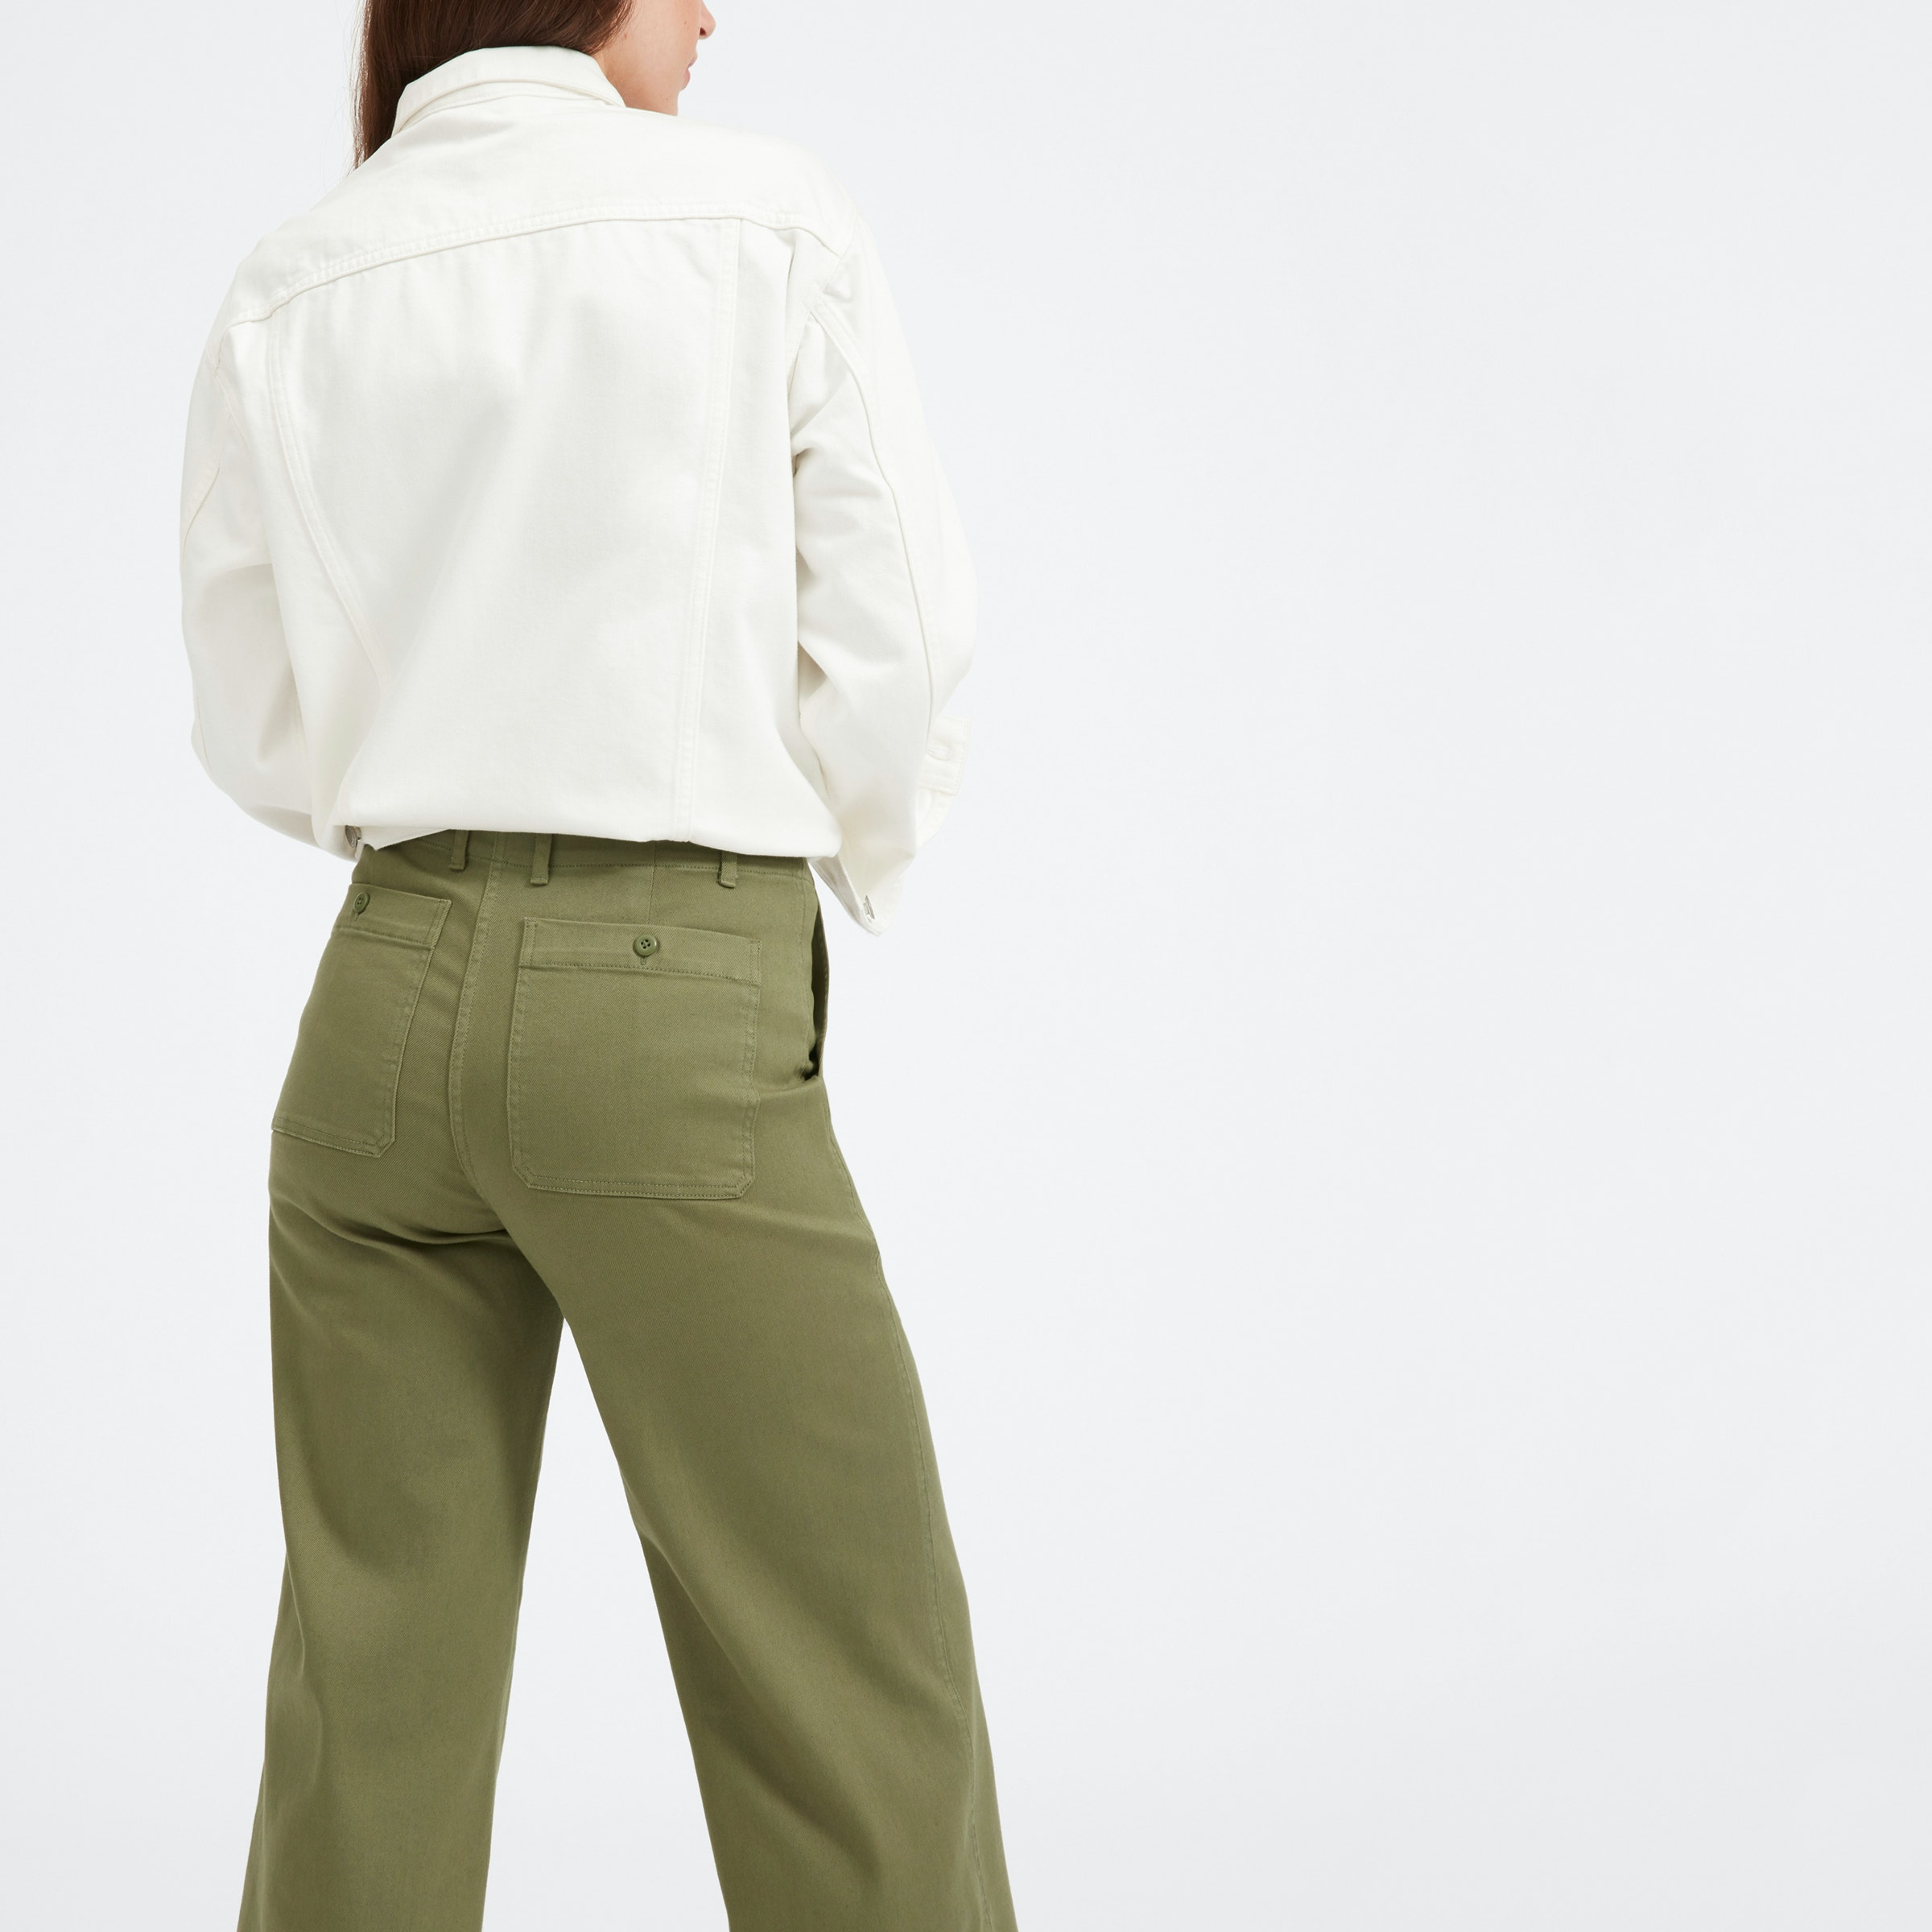 The Wide Leg Crop Utility Pant by Everlane